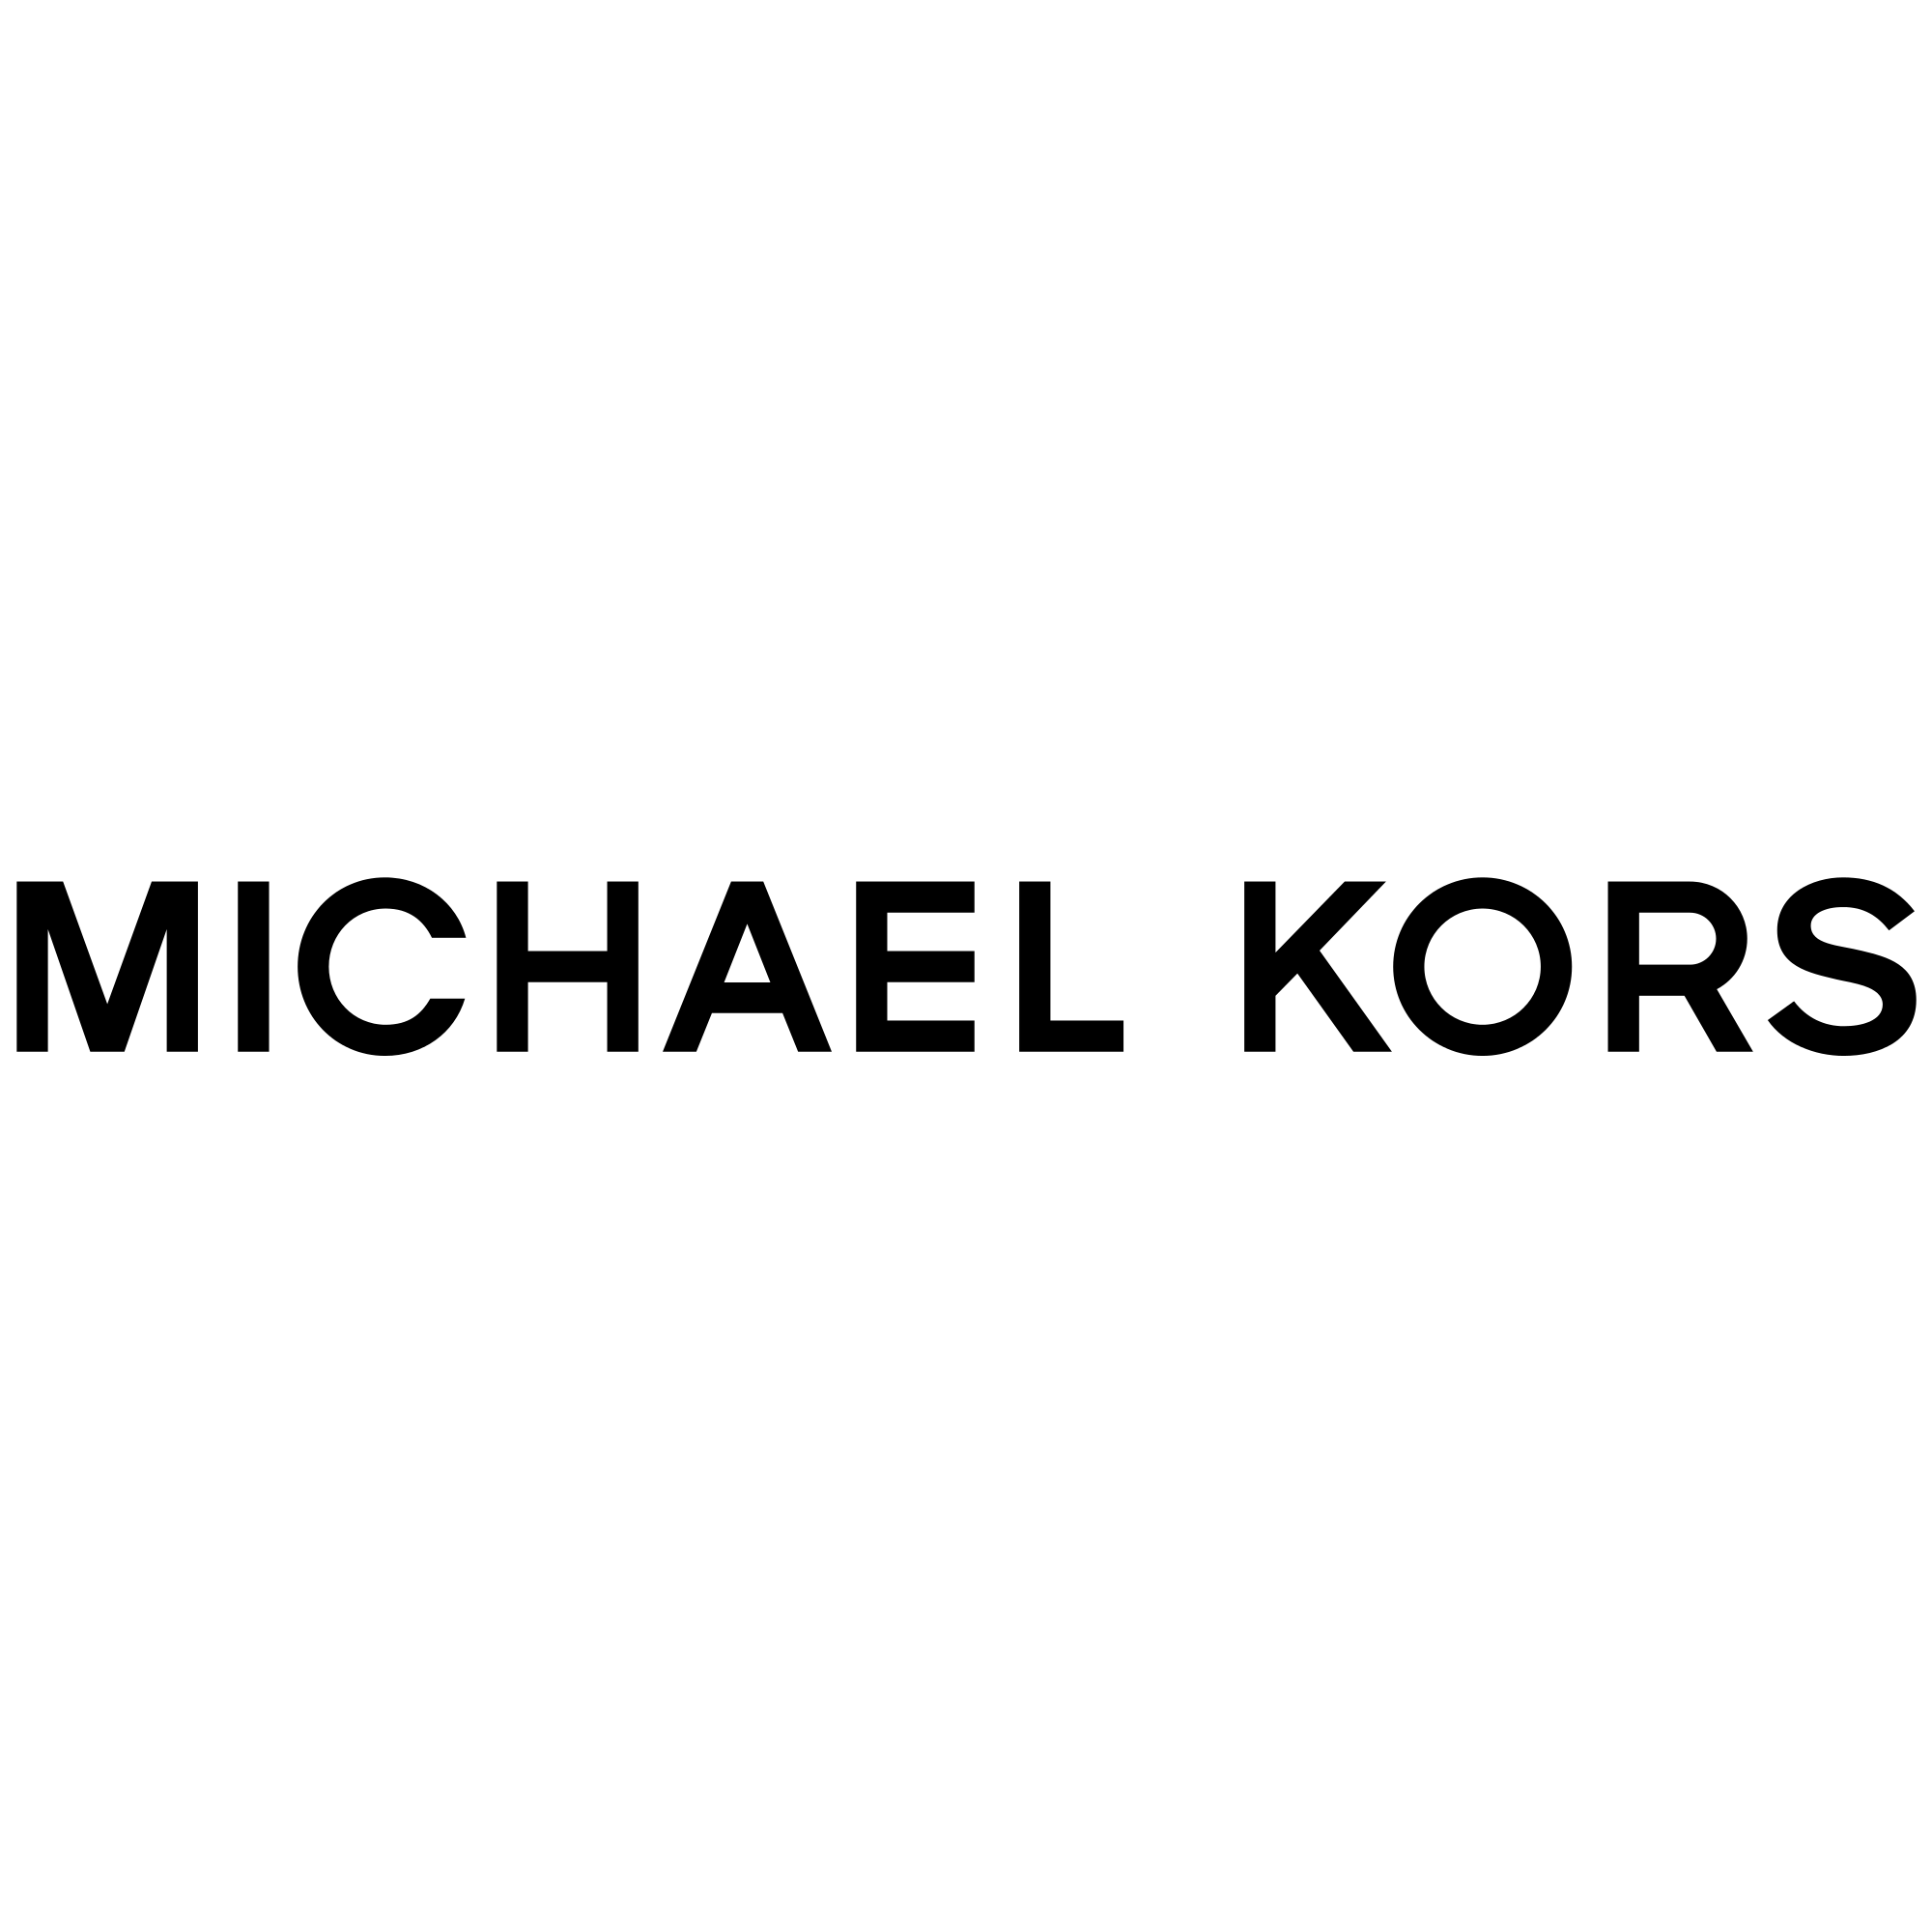 Michael Kors Logo Black Transparent